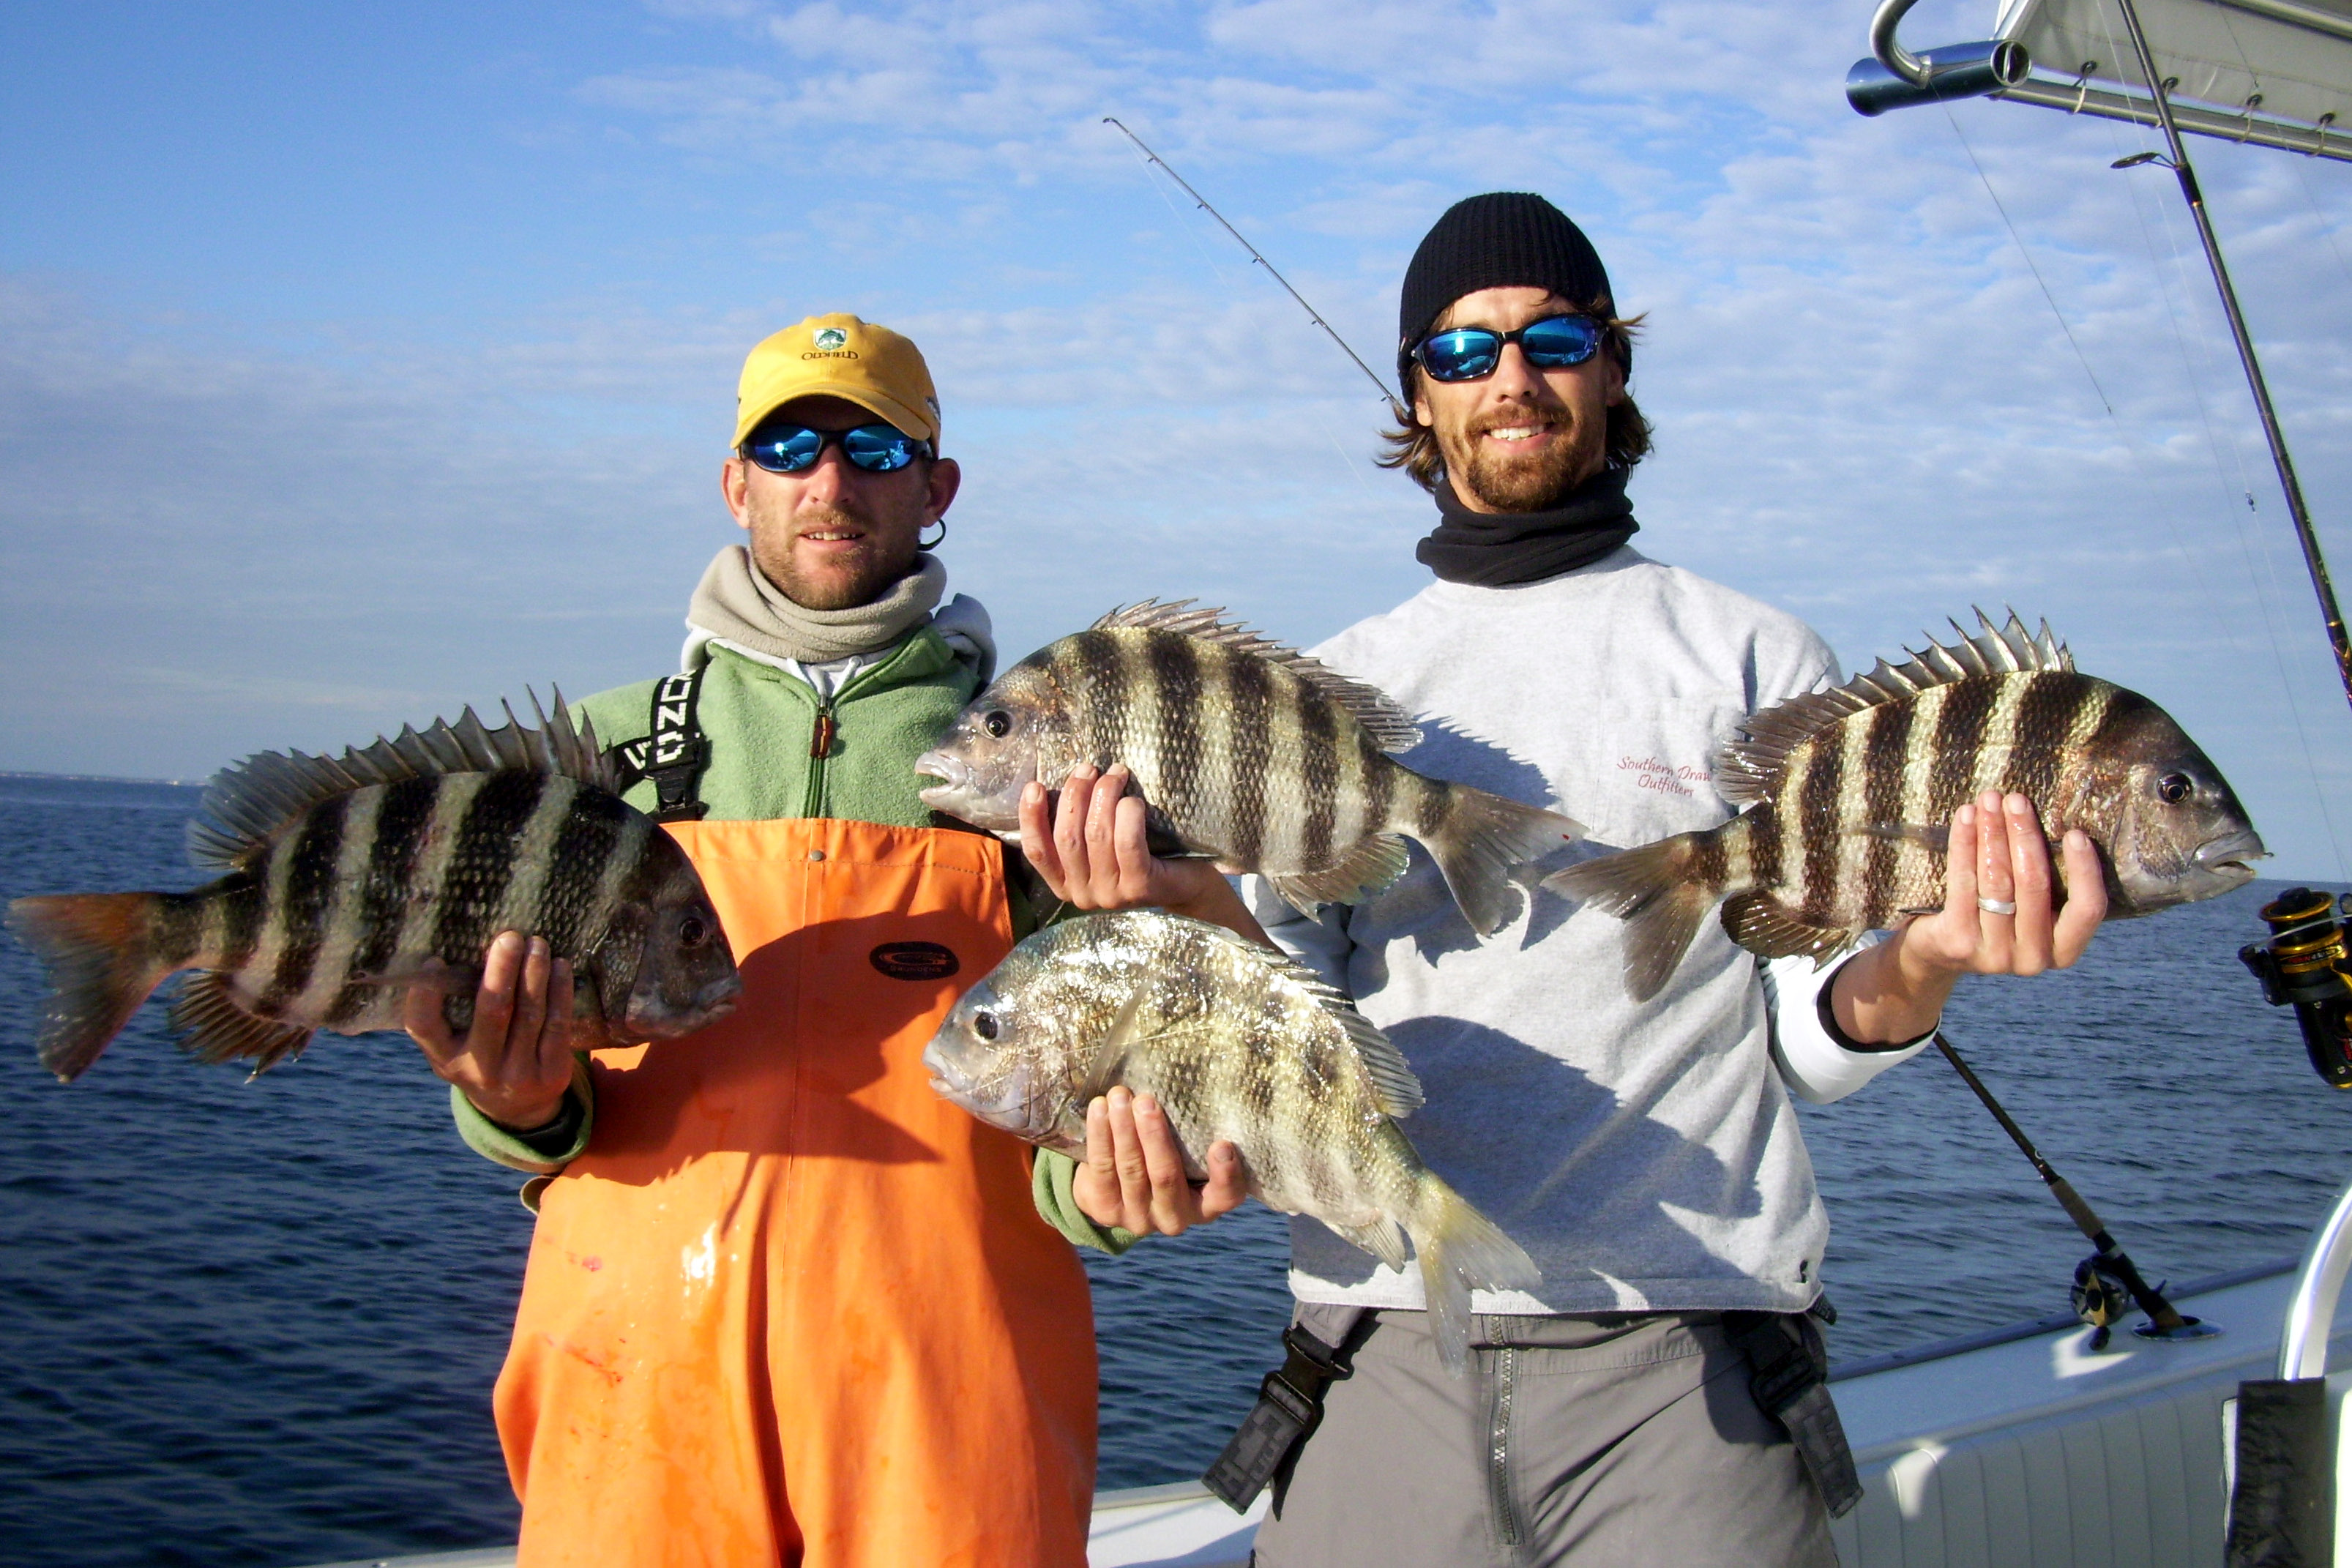 March Fishing Forecast for hilton Head, SCSaltwater Sheepshead Fish Good To Eat